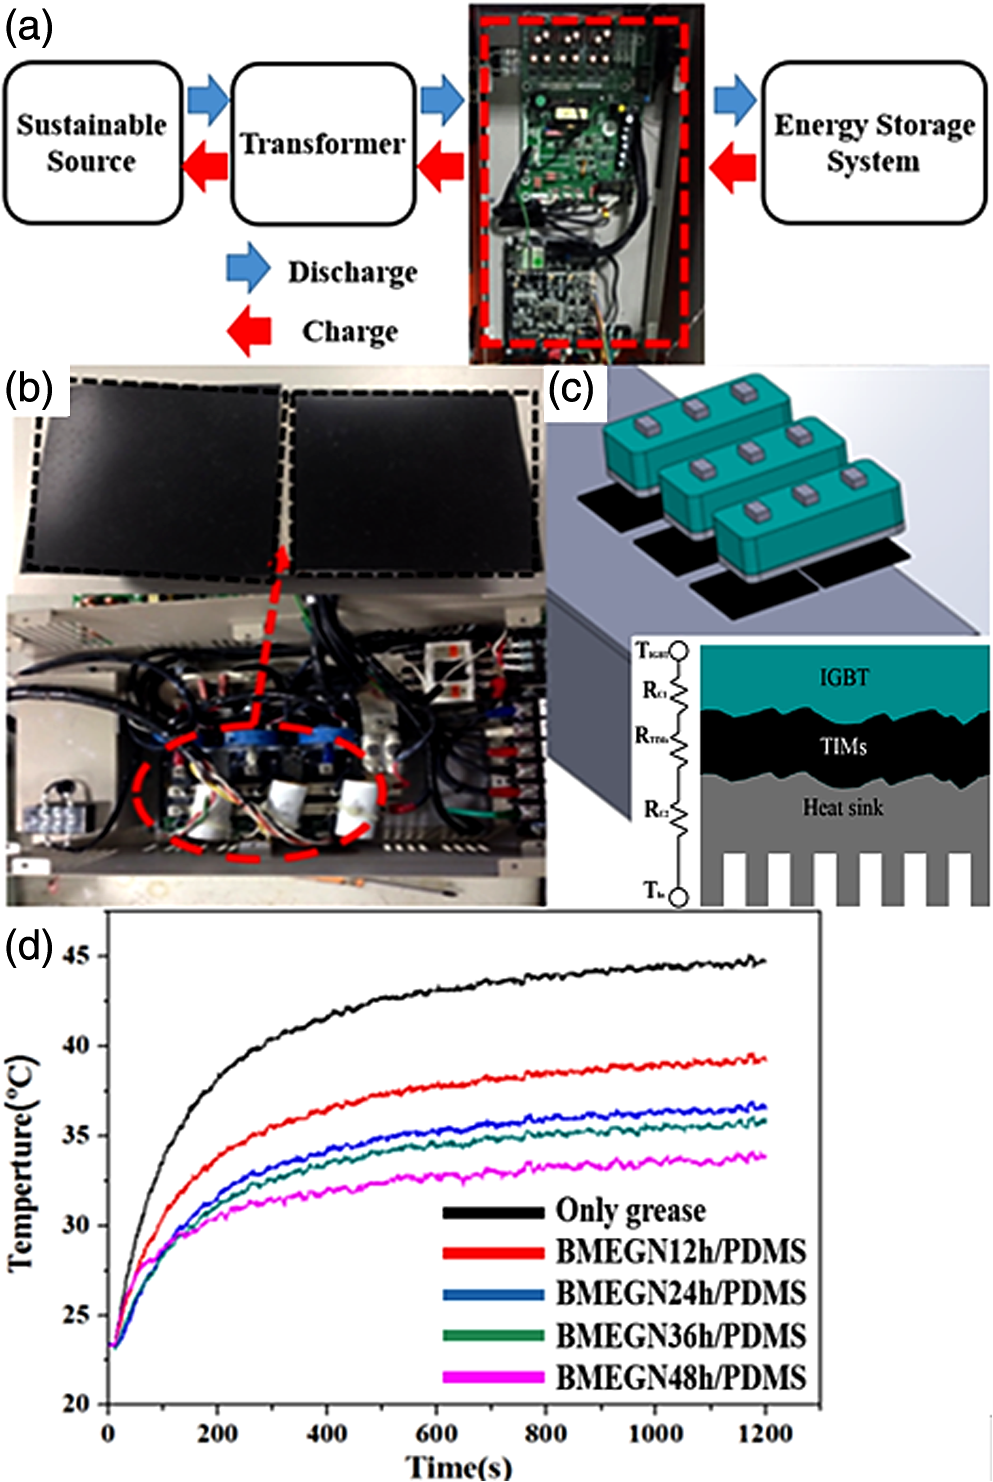 Ball Milled Dispersed Network Of Graphene Platelets As Thermal Verticaltypeballmilldiagrampng D During The Converter Operation Measured Temperature Bmegn Pdms With Various Milling Times Filler At 12 24 36 And 48 H